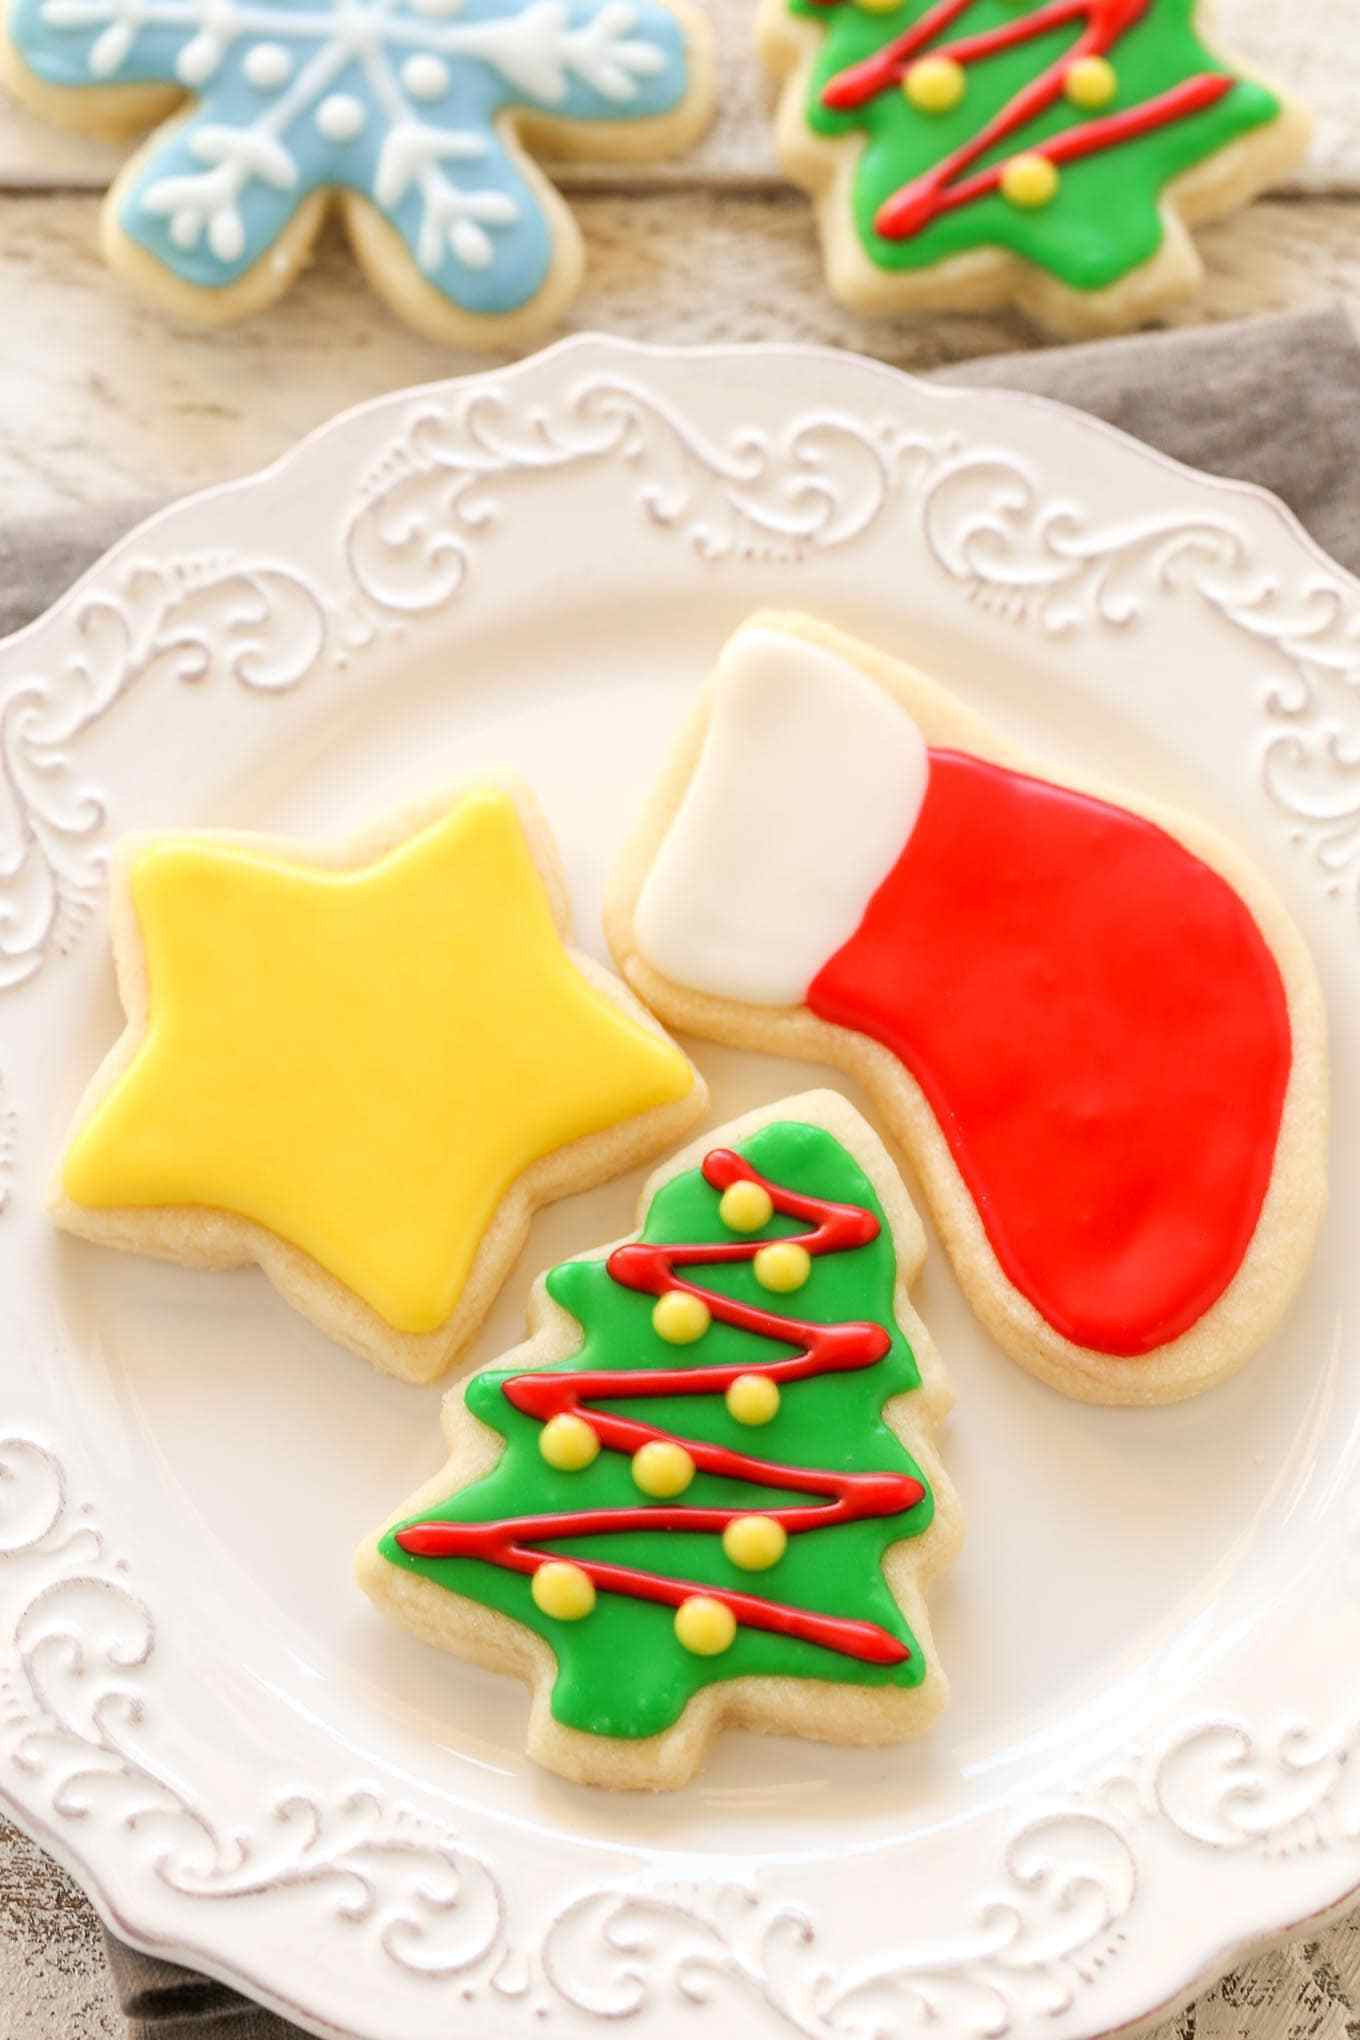 Christmas Cutout Cookies  Soft Christmas Cut Out Sugar Cookies Live Well Bake ten